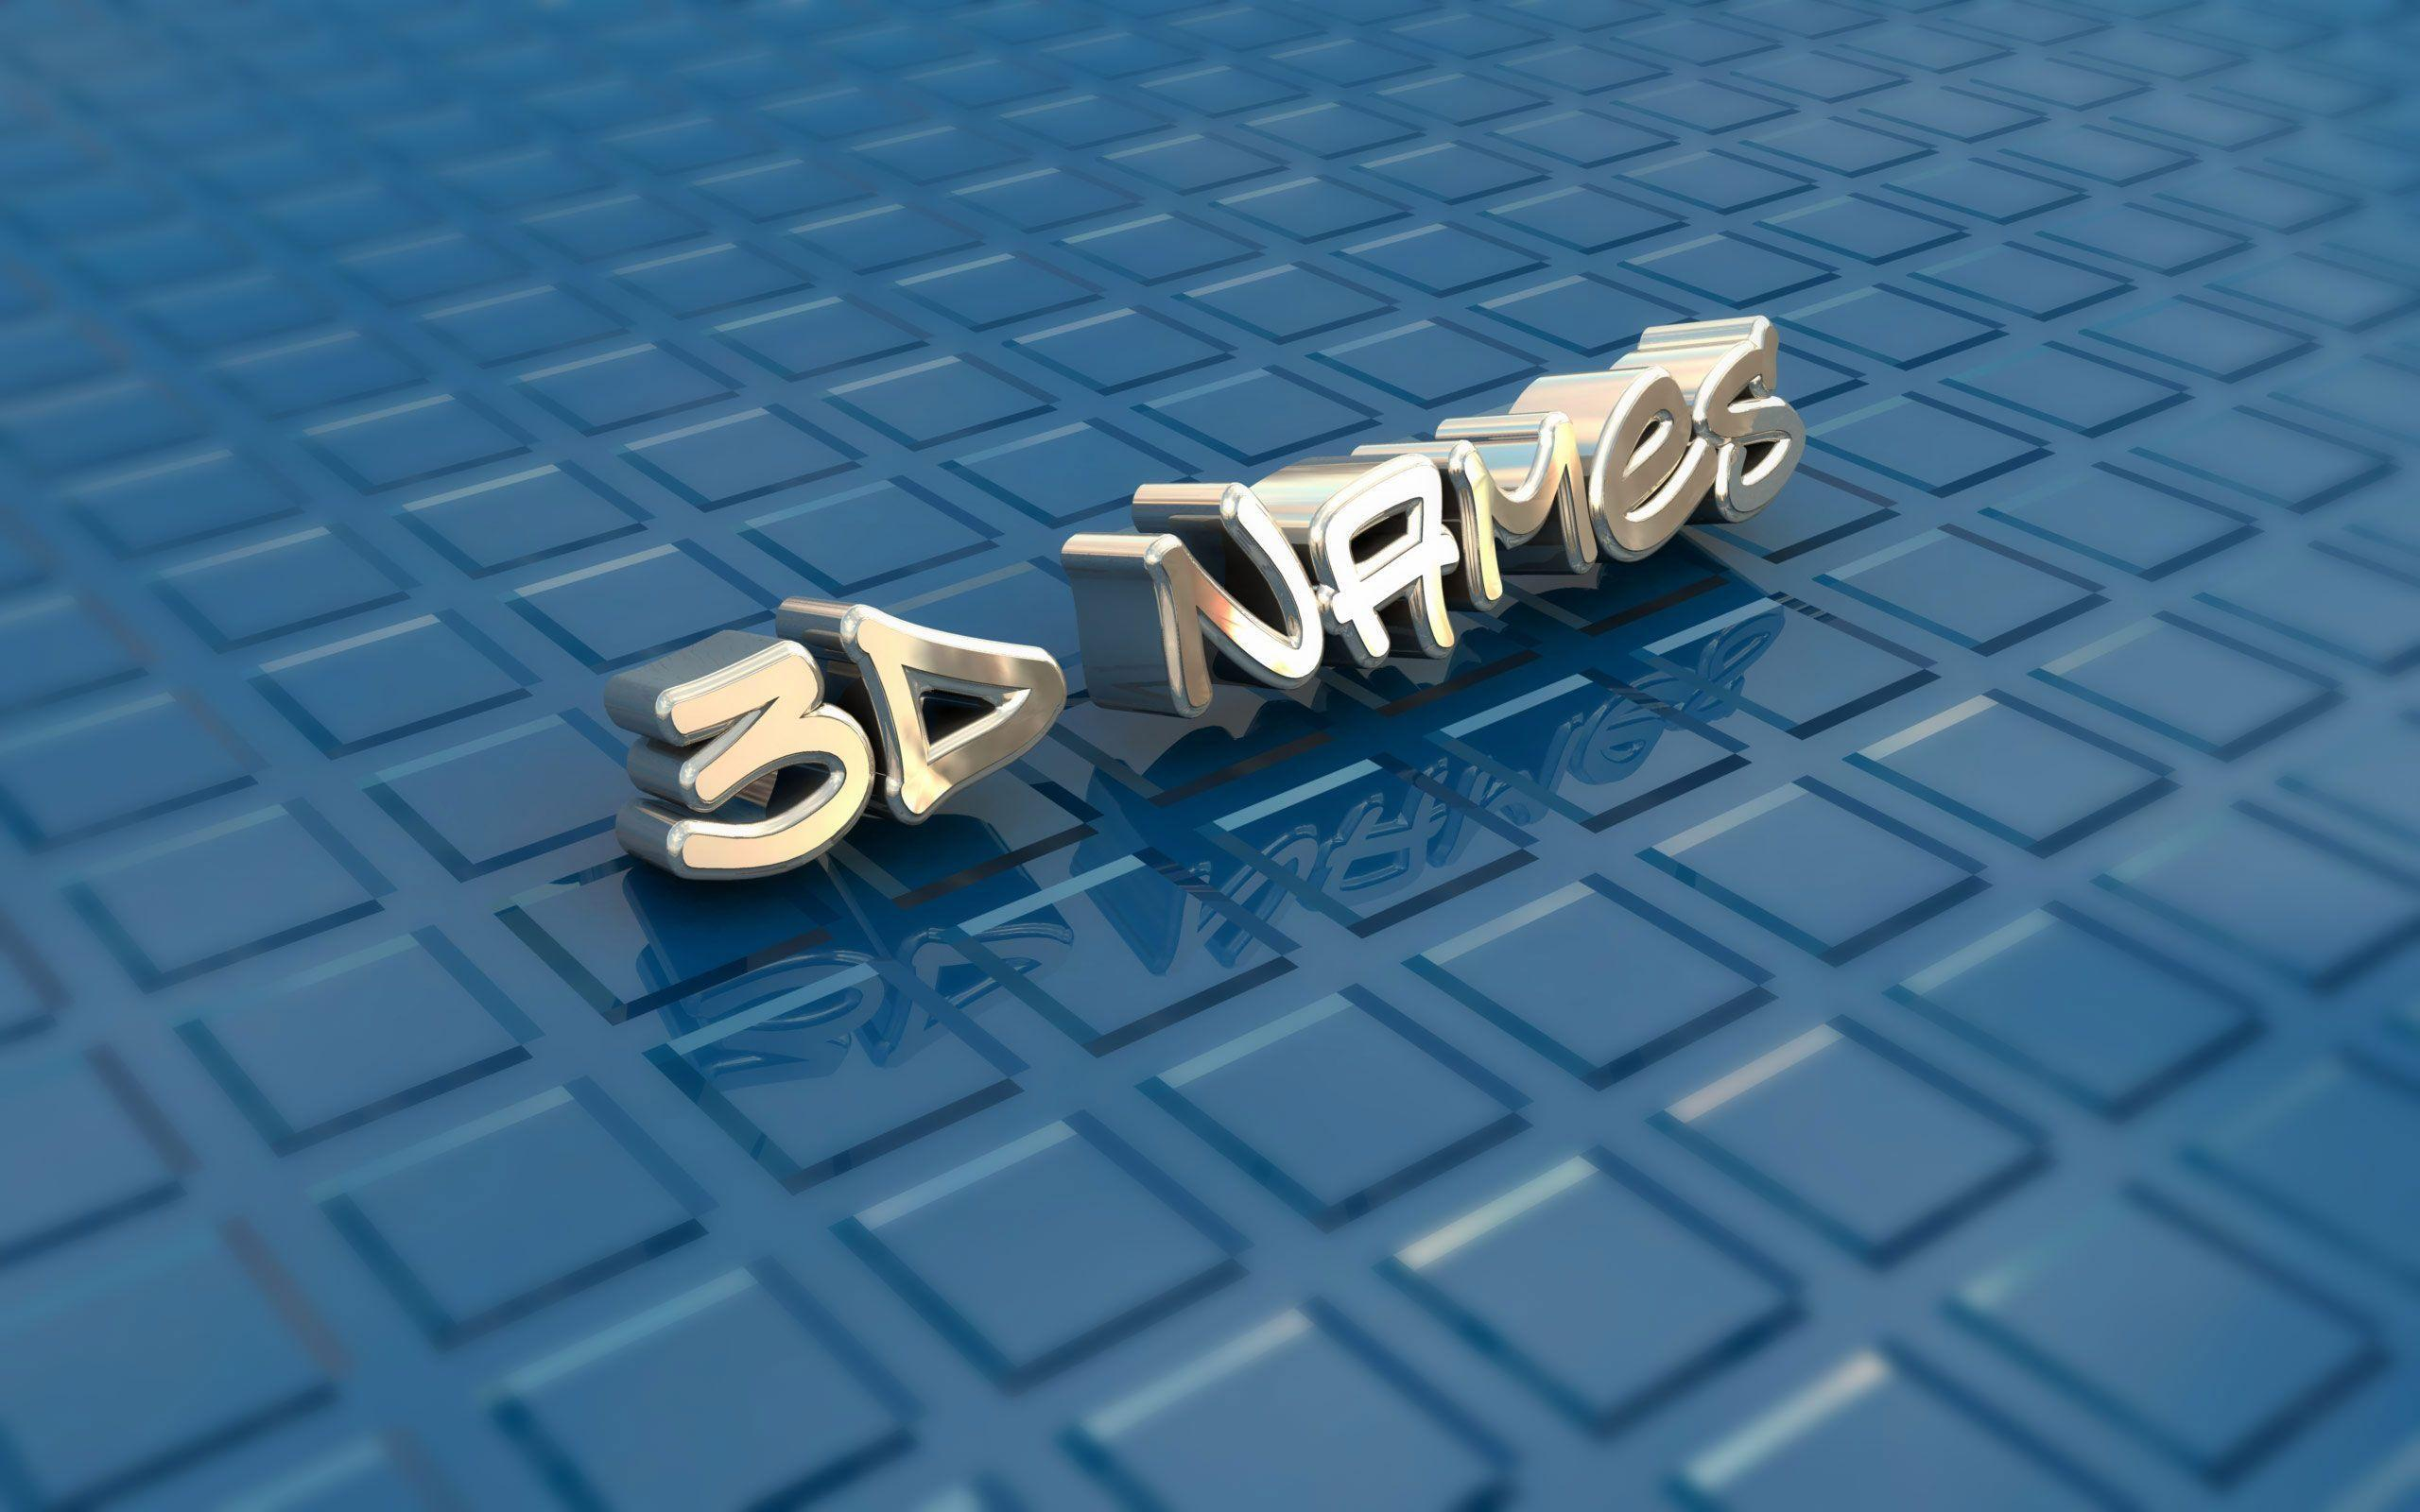 3d name wallpapers - wallpaper cave